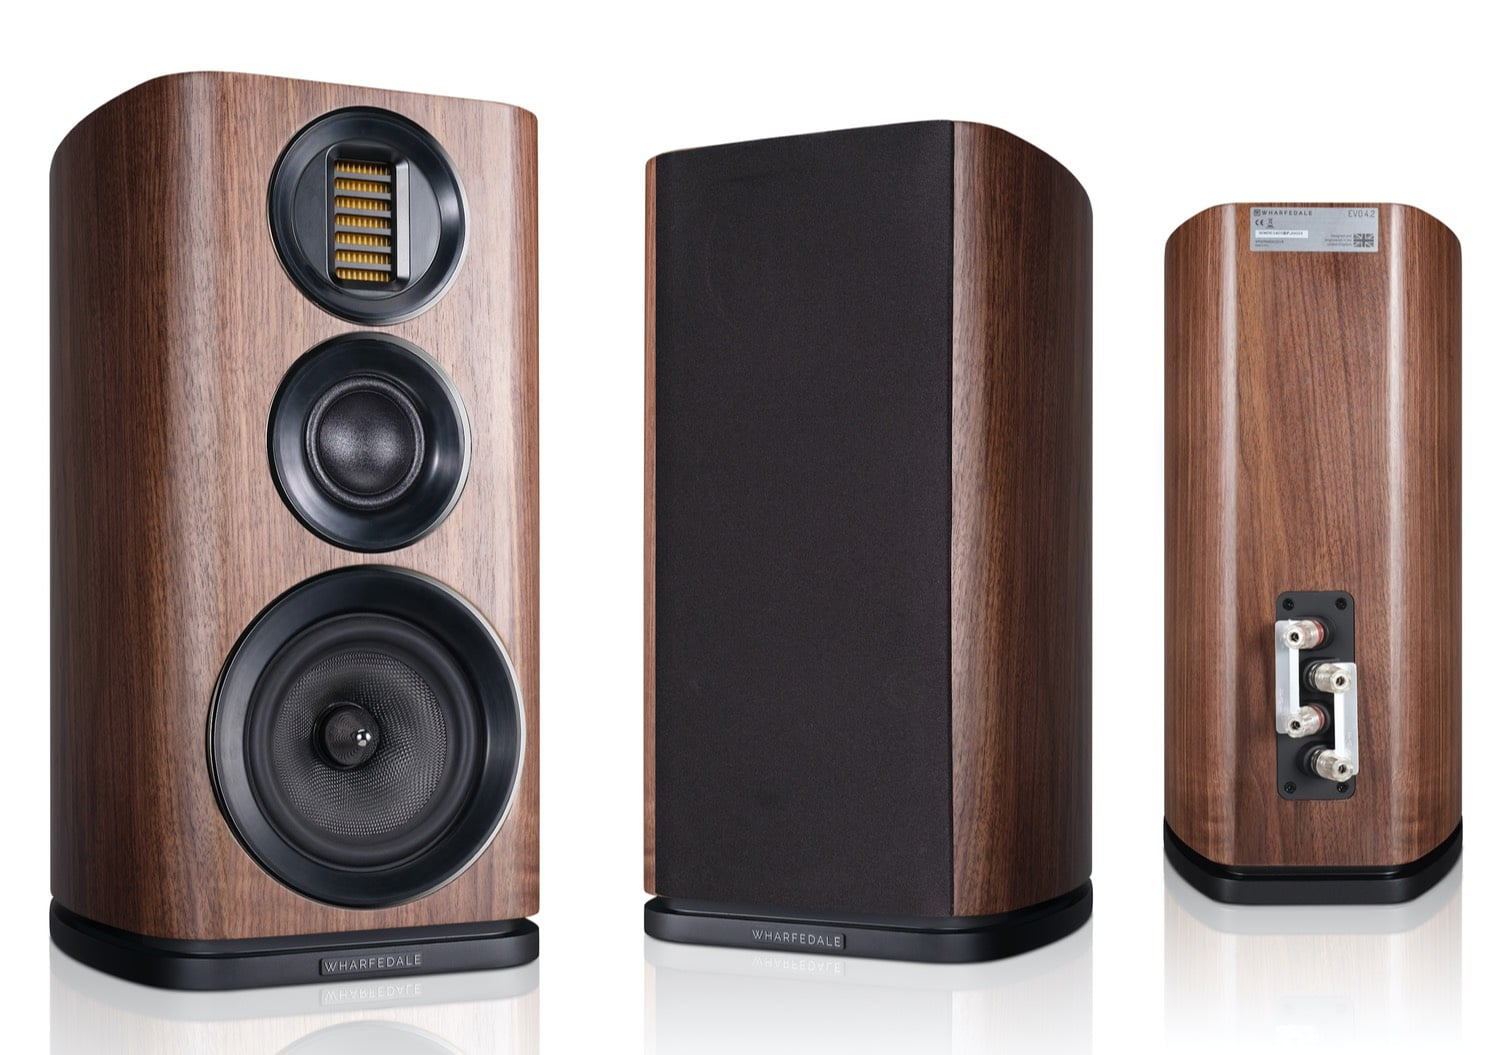 EVO4 Series speakers From Wharfedale - The Audiophile Man